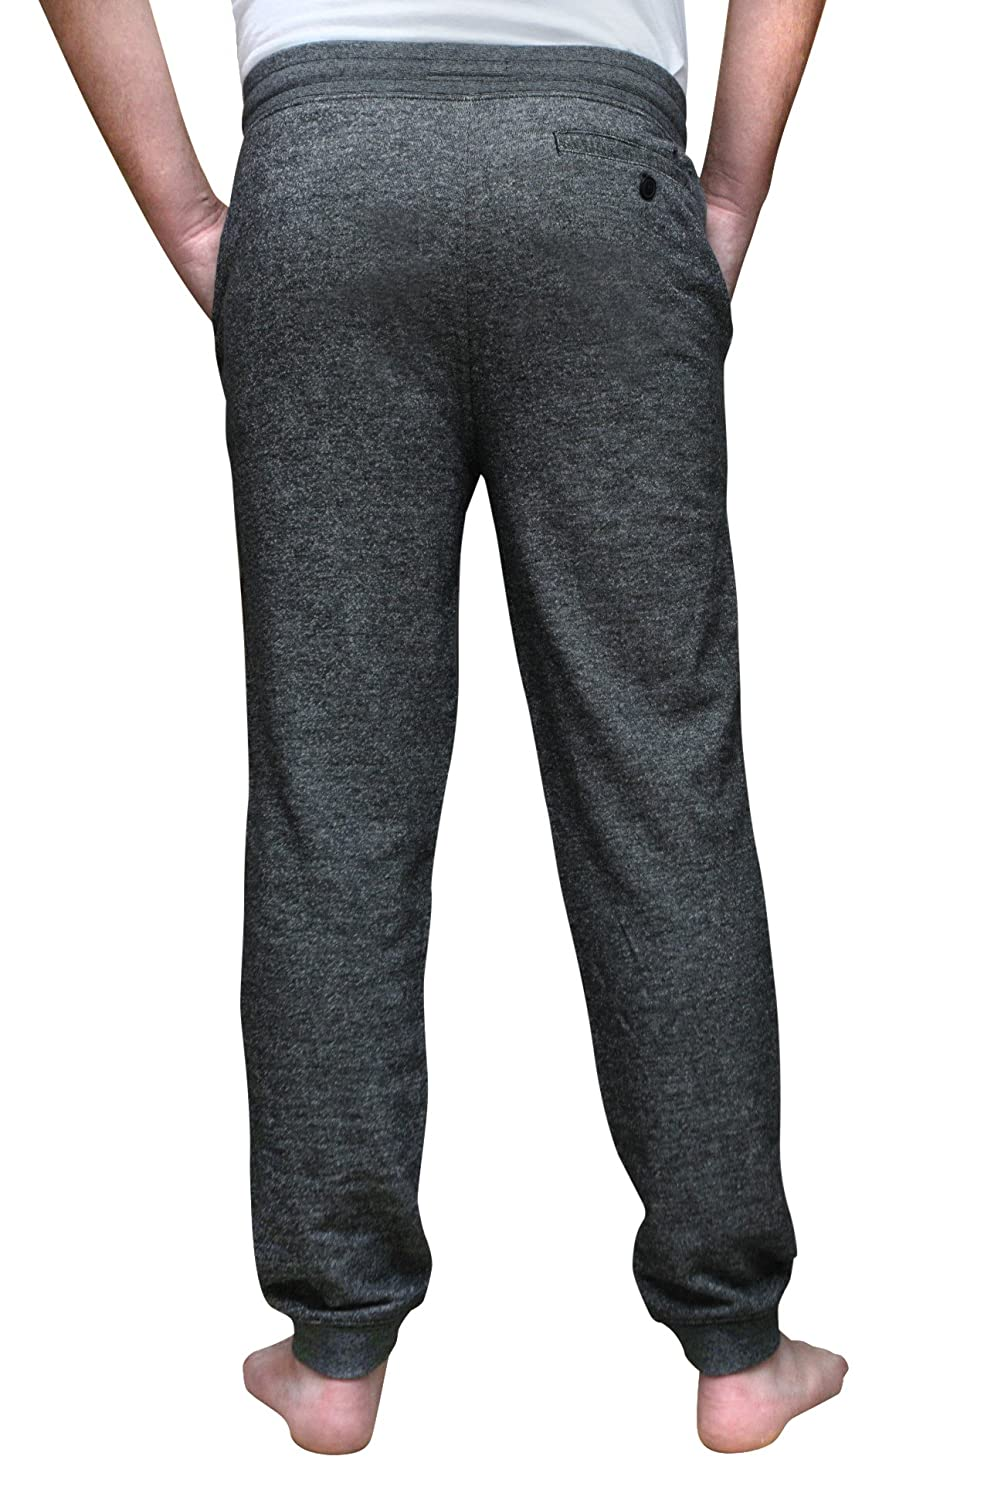 a0a999d8 Express Men's French Terry Marled Jogger Pant with Pockets at Amazon Men's  Clothing store: